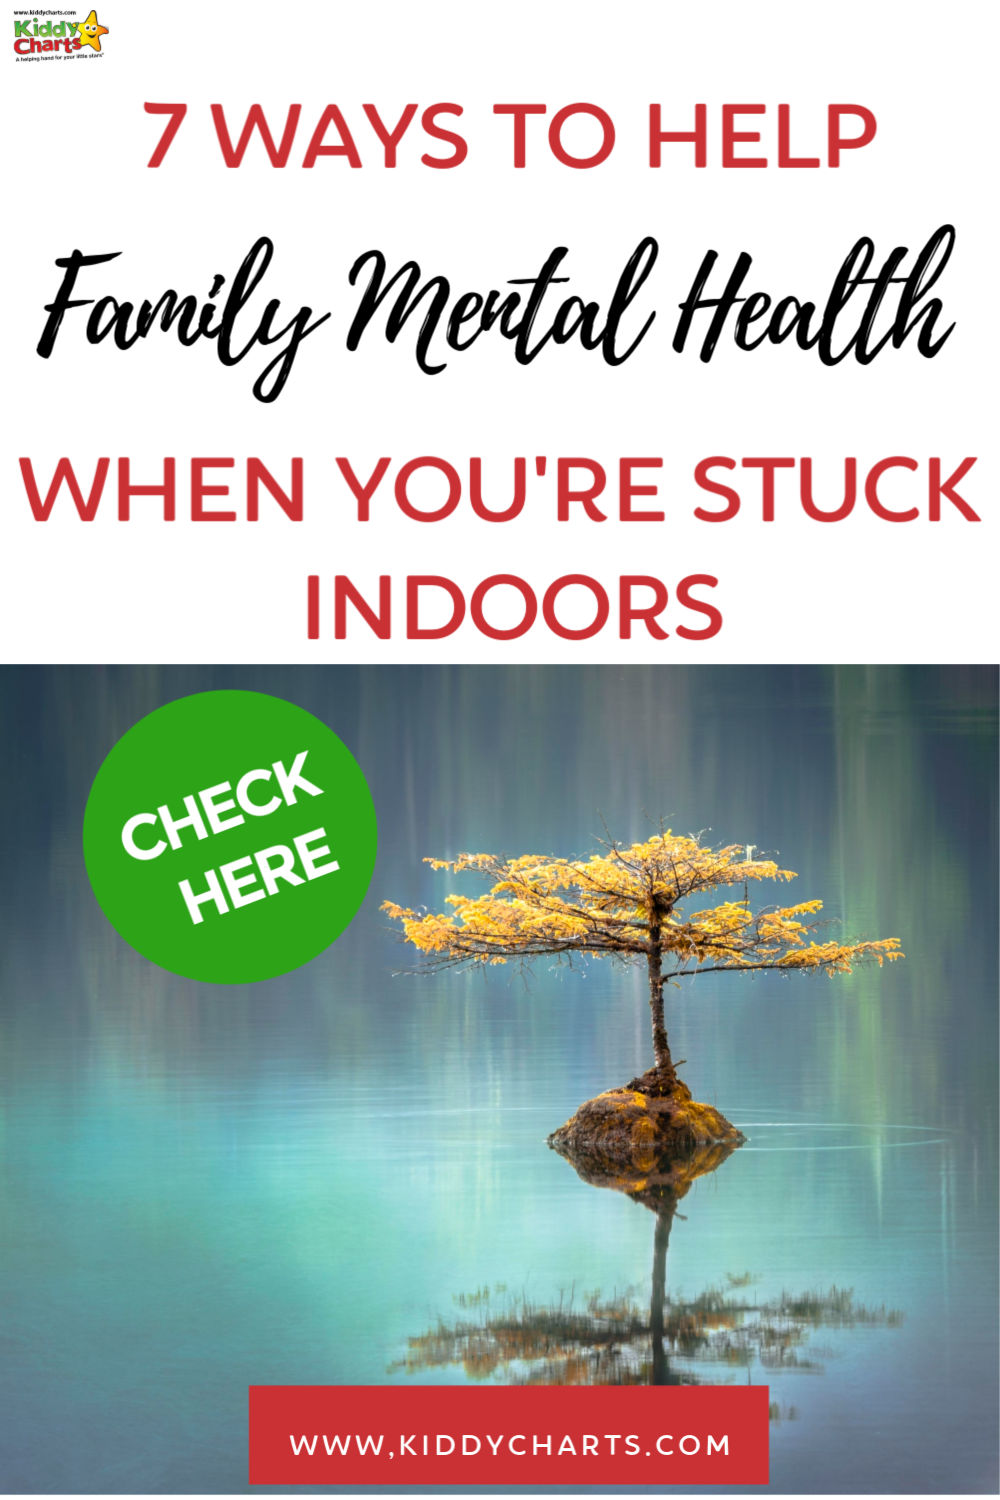 7 ways to help family's mental health when you're stuck indoors